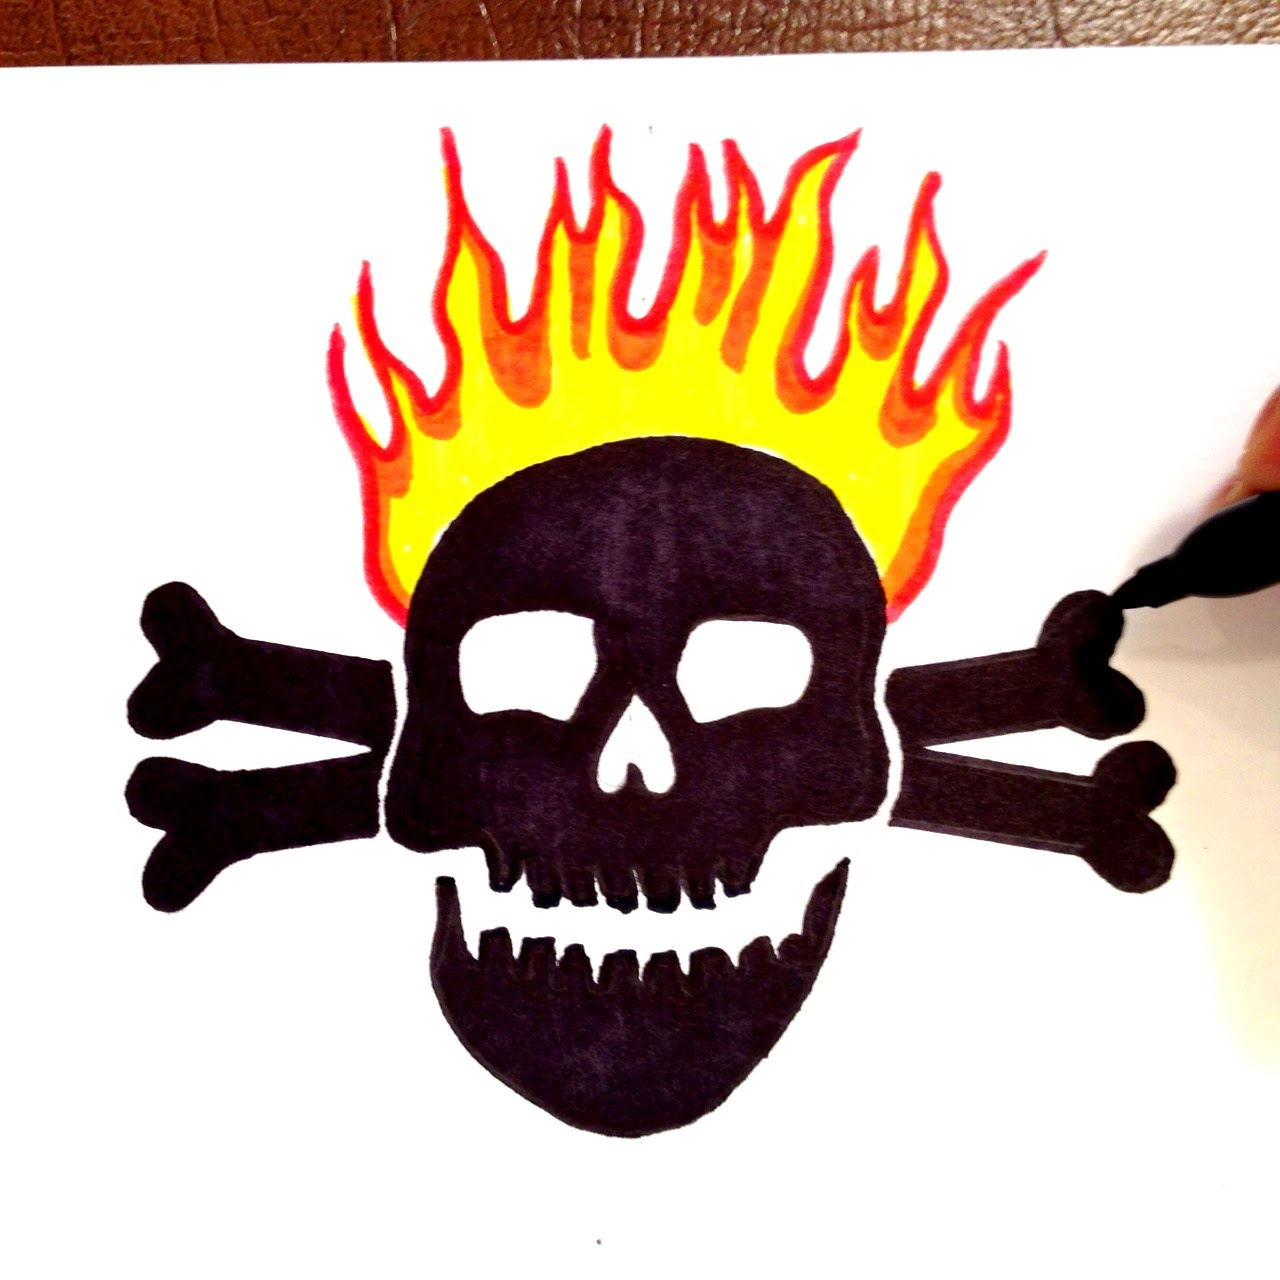 1280x1280 How To Draw A Black Skull With Crossbones With Flames